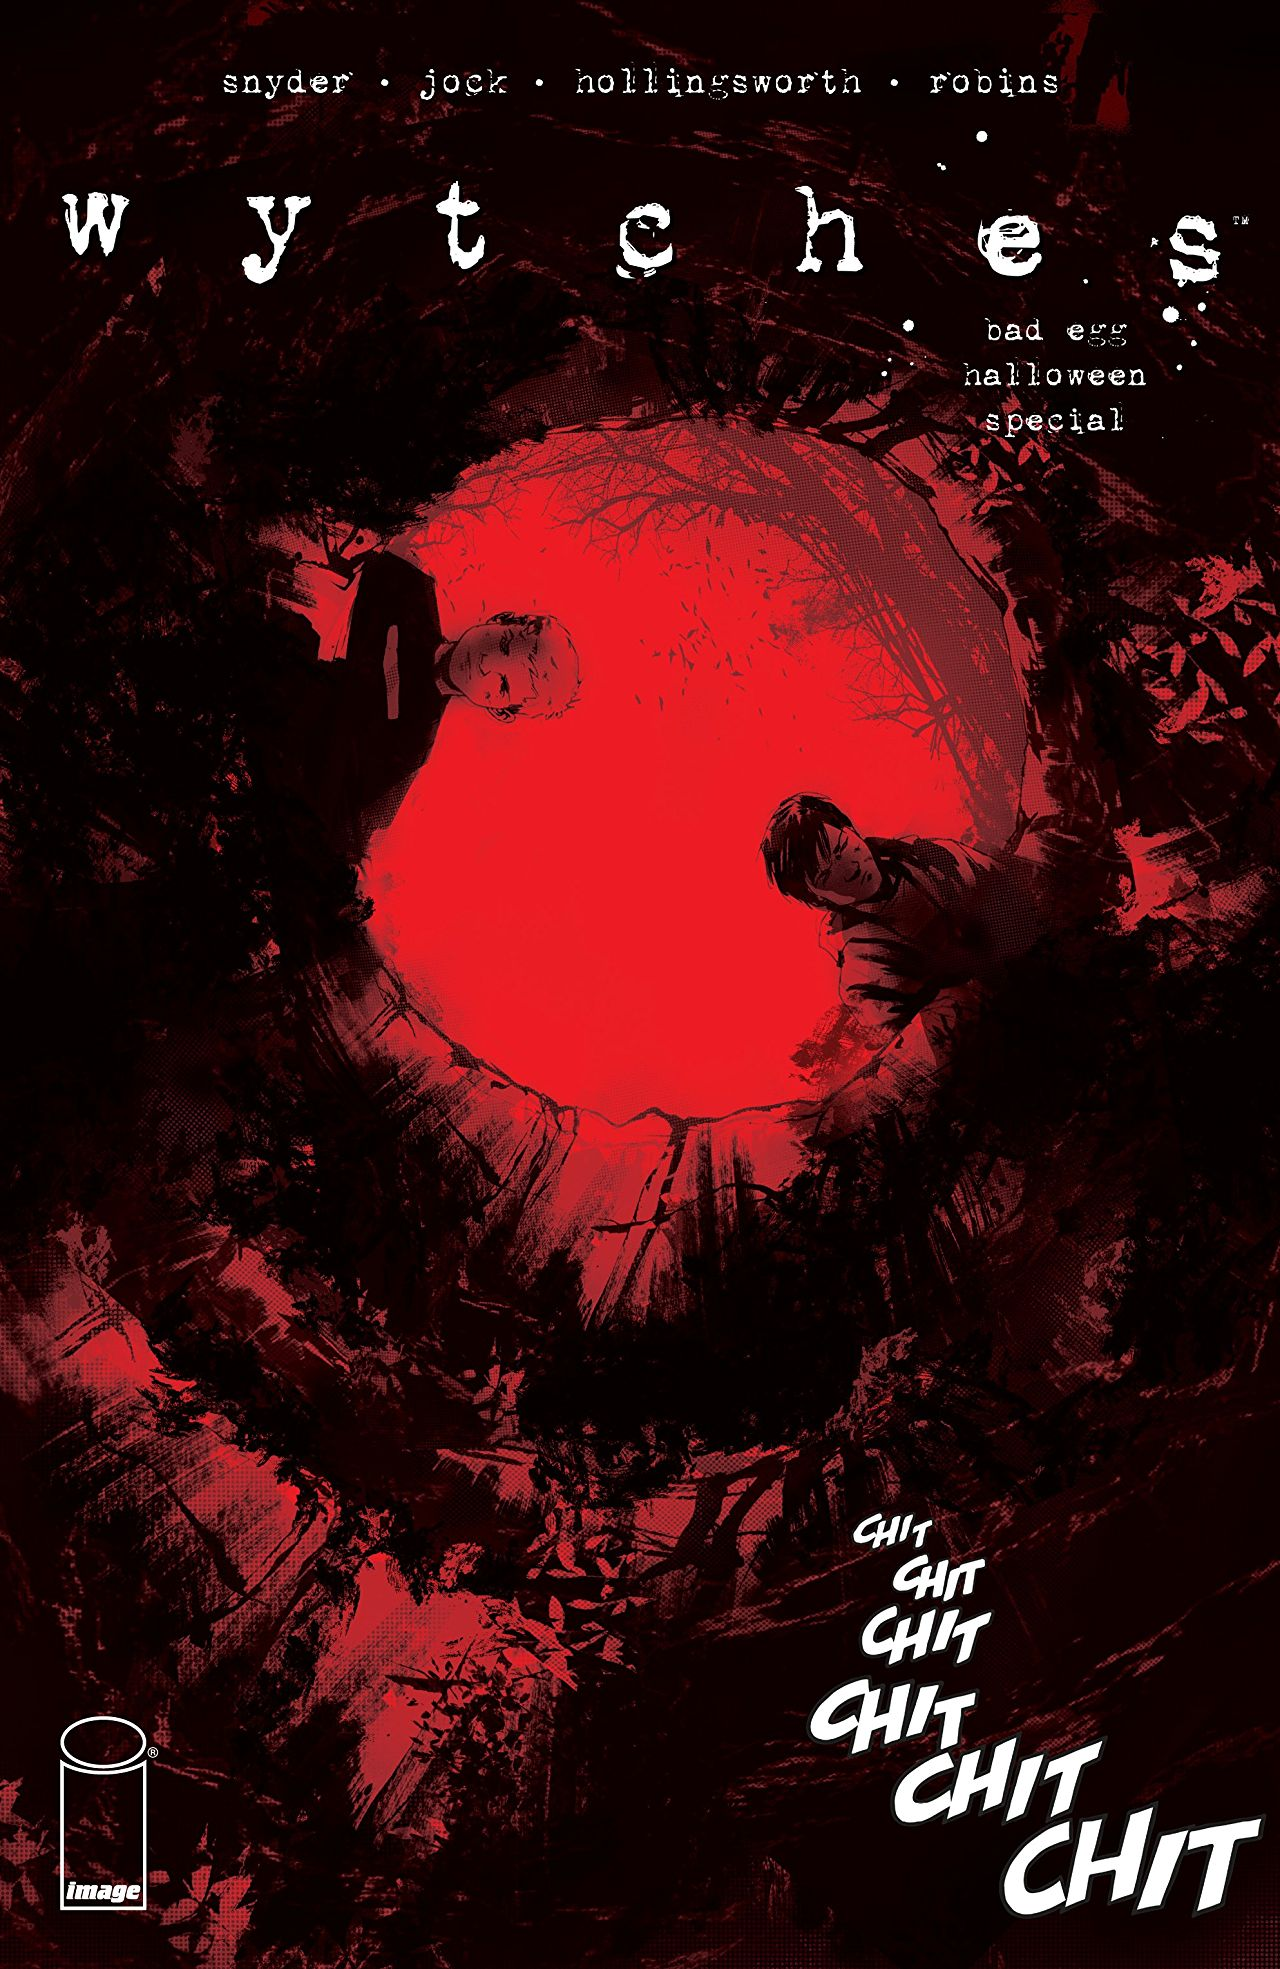 The cover of Wytches: Bad Egg Halloween Special